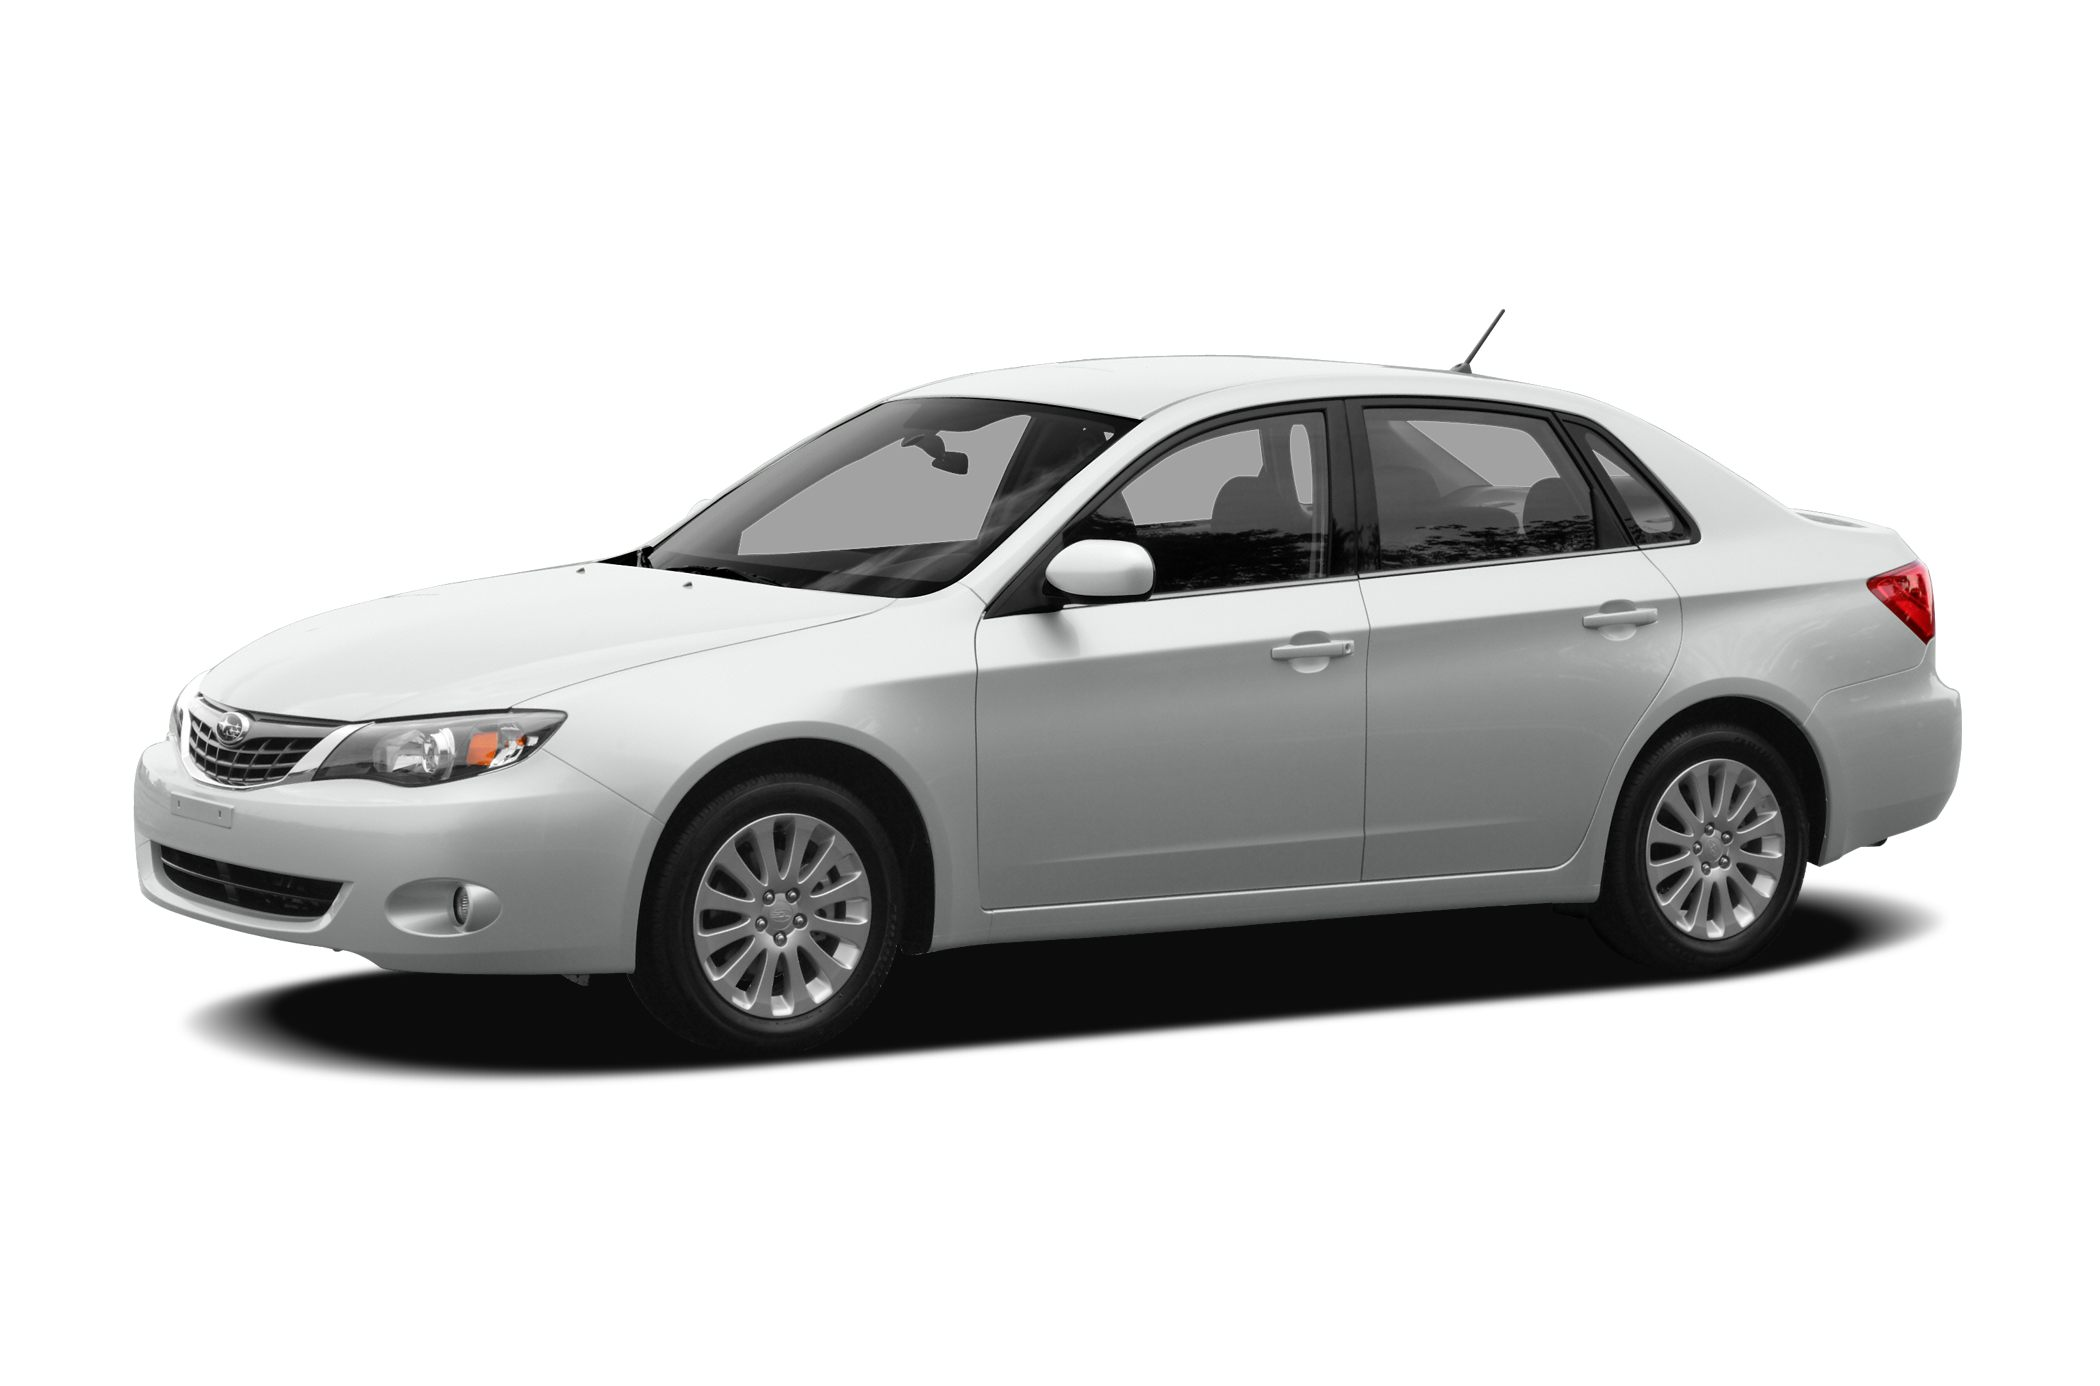 2008 Subaru Impreza 25i OUR PRICESYoure probably wondering why our prices are so much lower tha